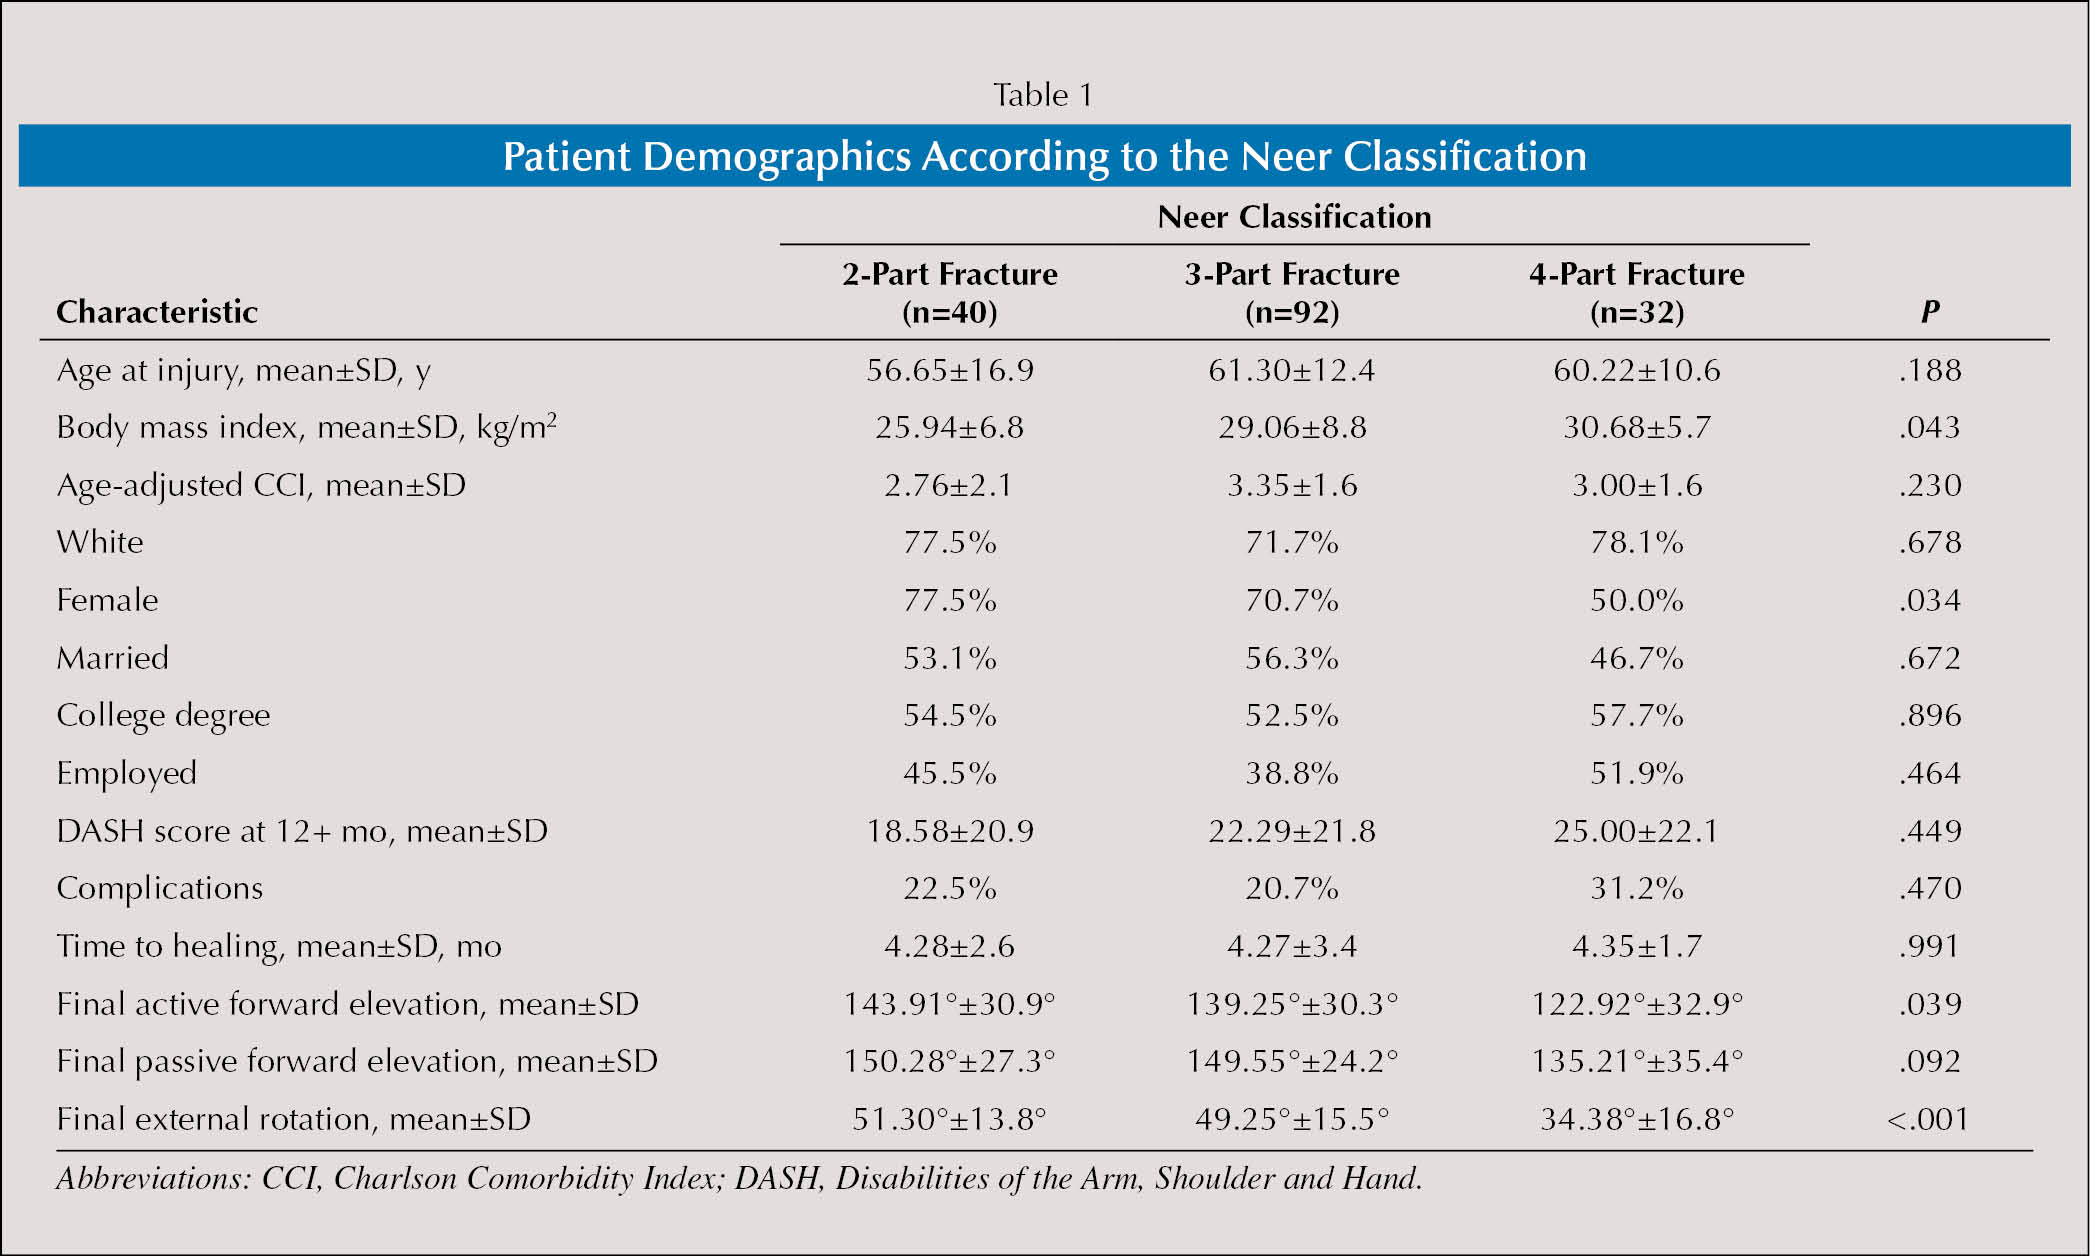 Patient Demographics According to the Neer Classification